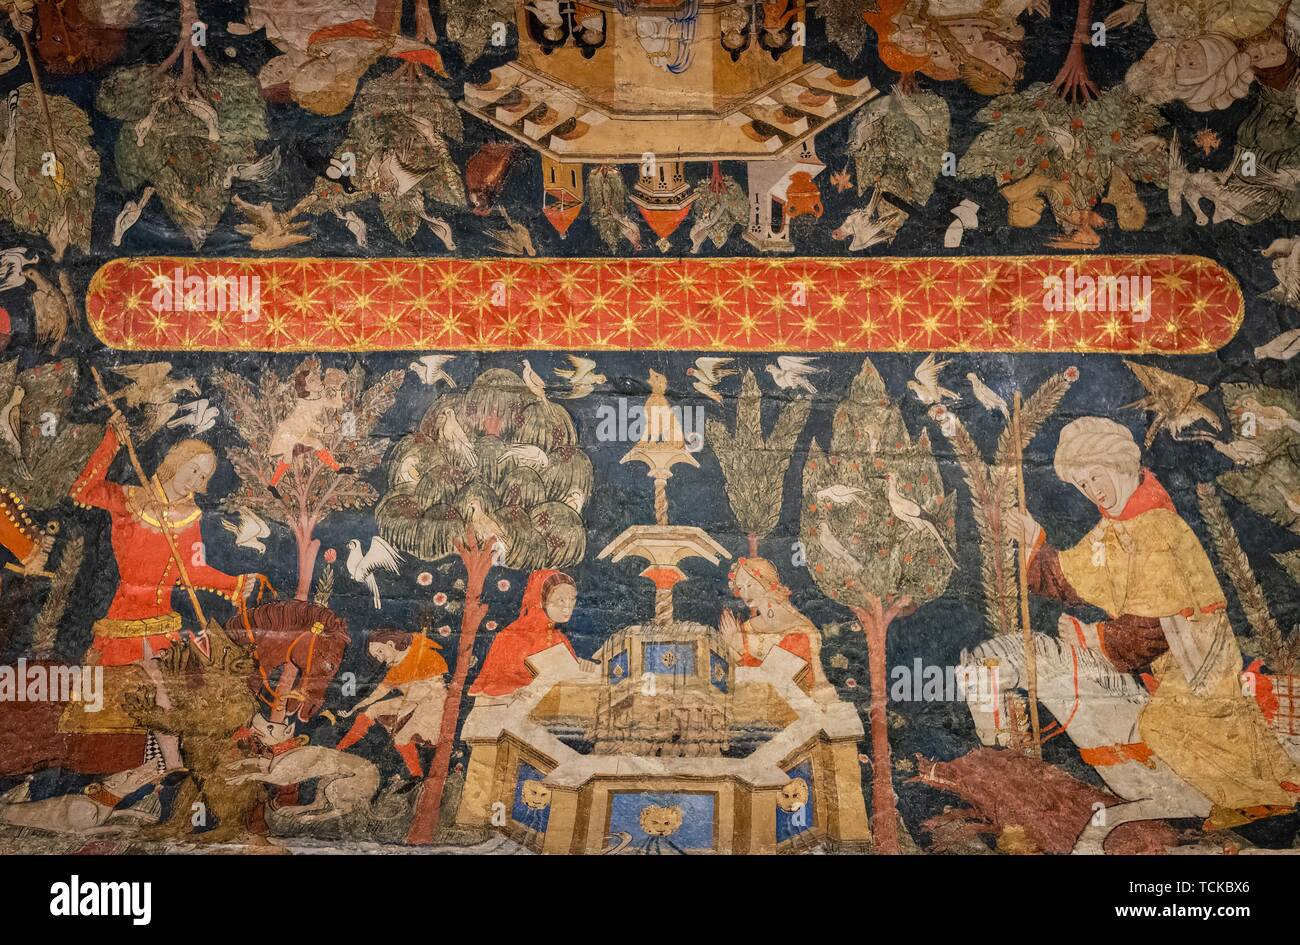 Ceiling painting, Sala de los Reyes, Room of the Kings, Nasrid palaces, Alhambra, Granada, Andalusia, Spain Stock Photo